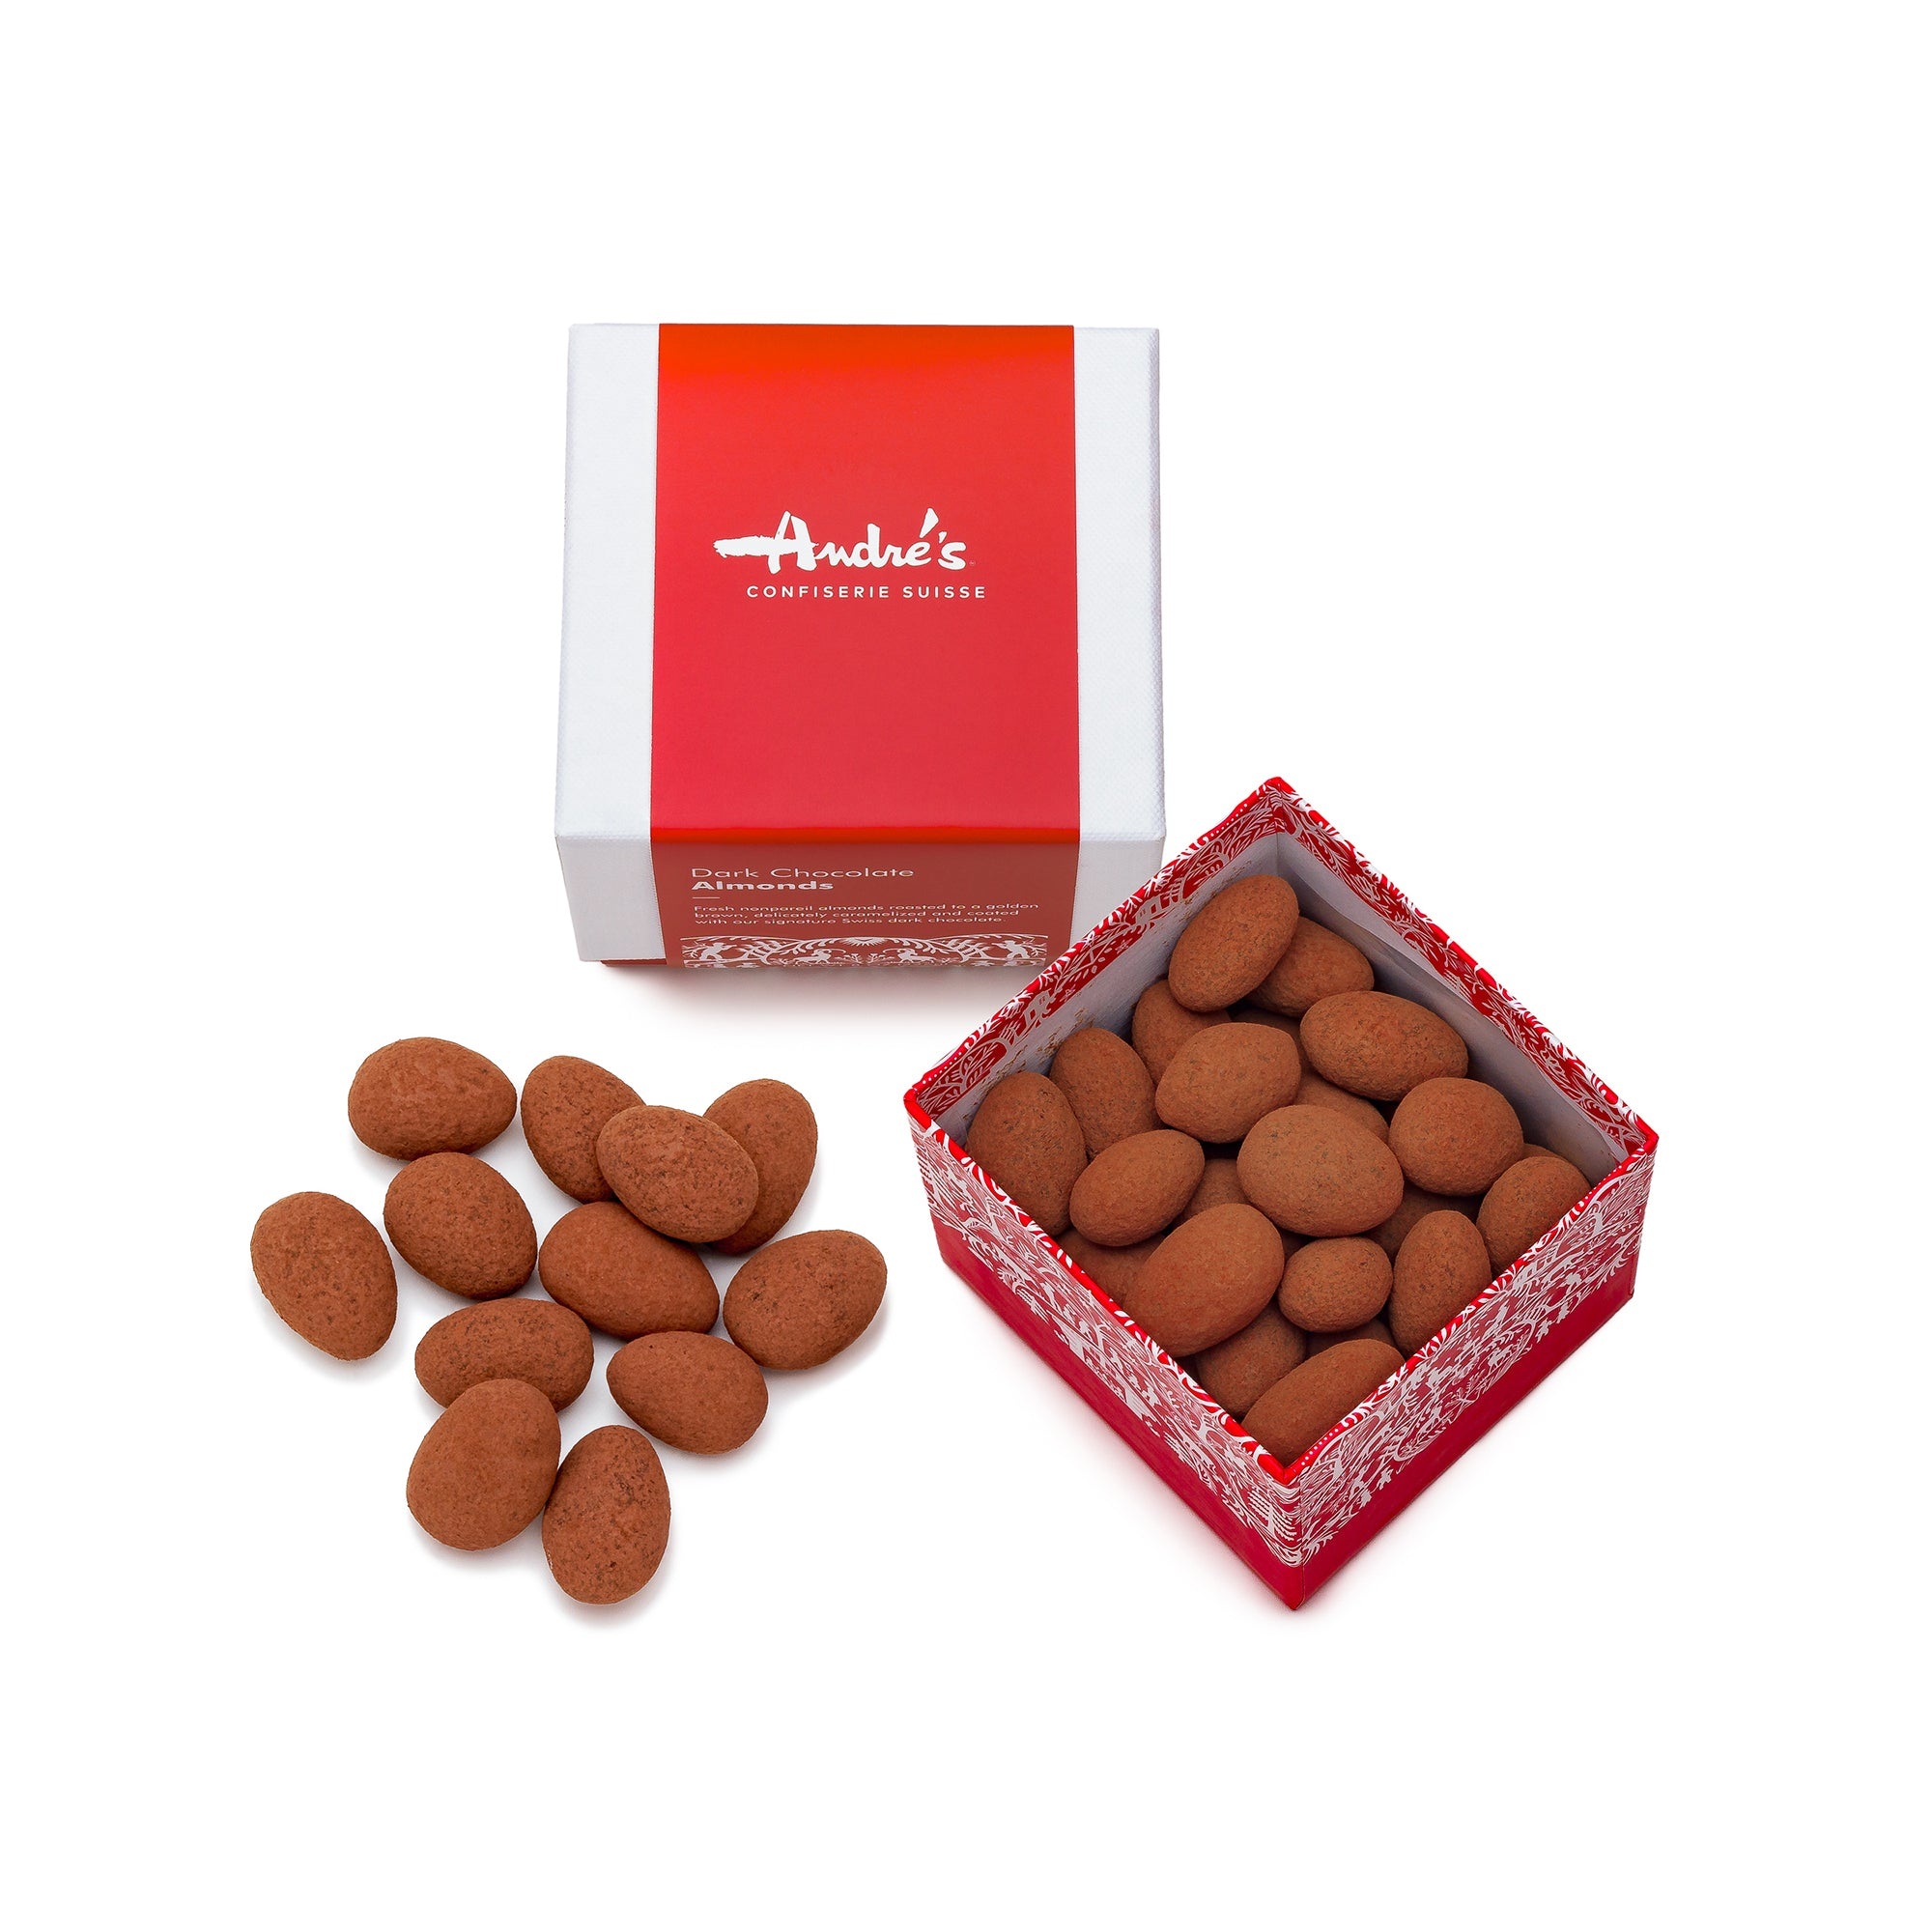 Signature Dark Chocolate Almonds